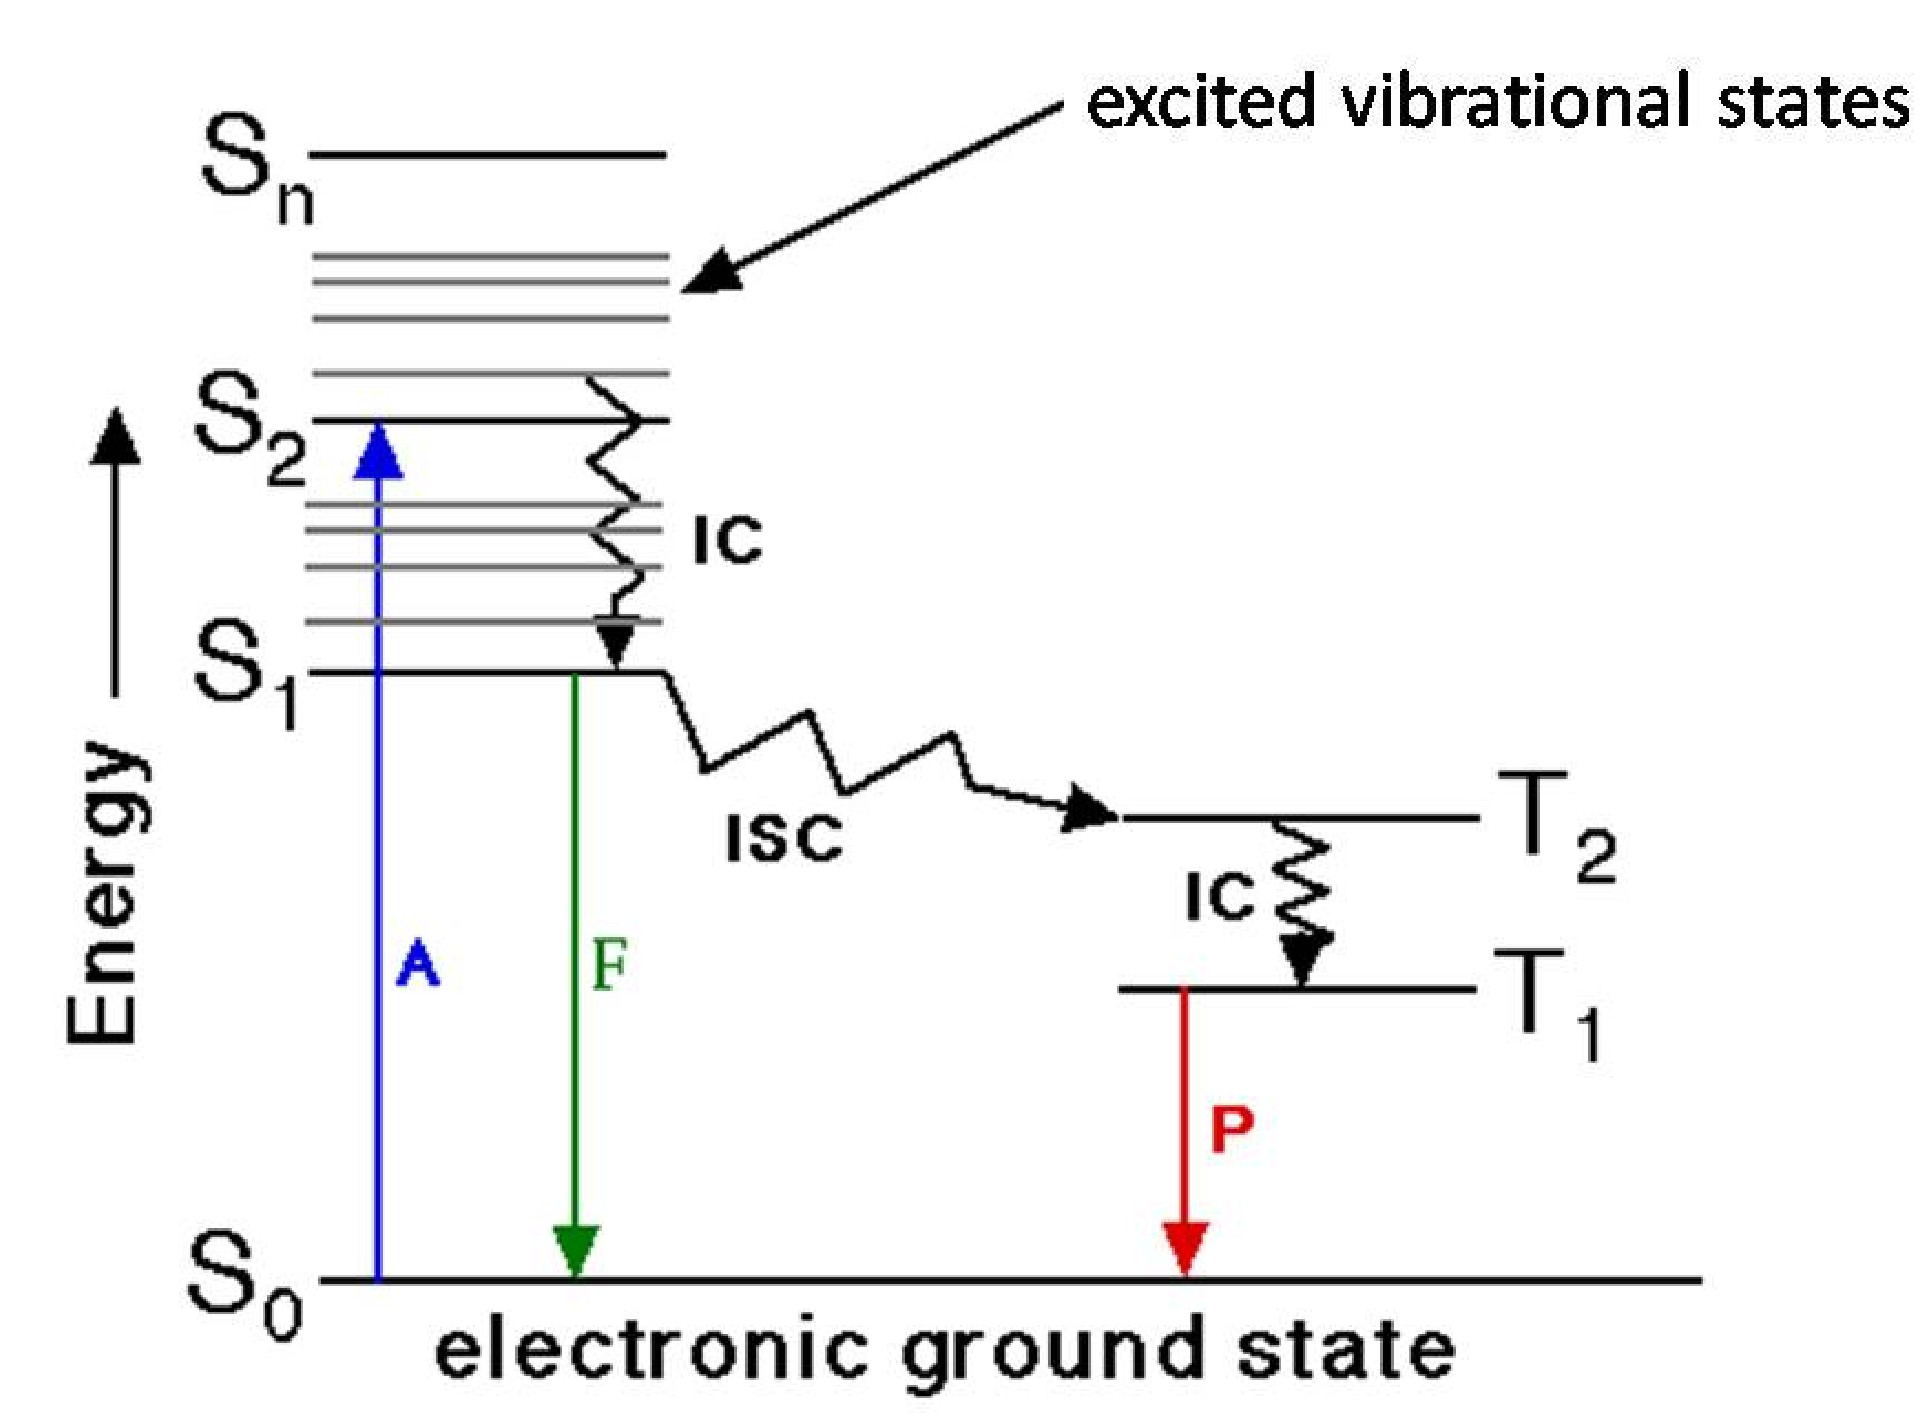 hight resolution of figure 4 5 10 jablonski diagram where a absorbance f fluorescence p phosphorescence s single state t triplet state ic internal conversion